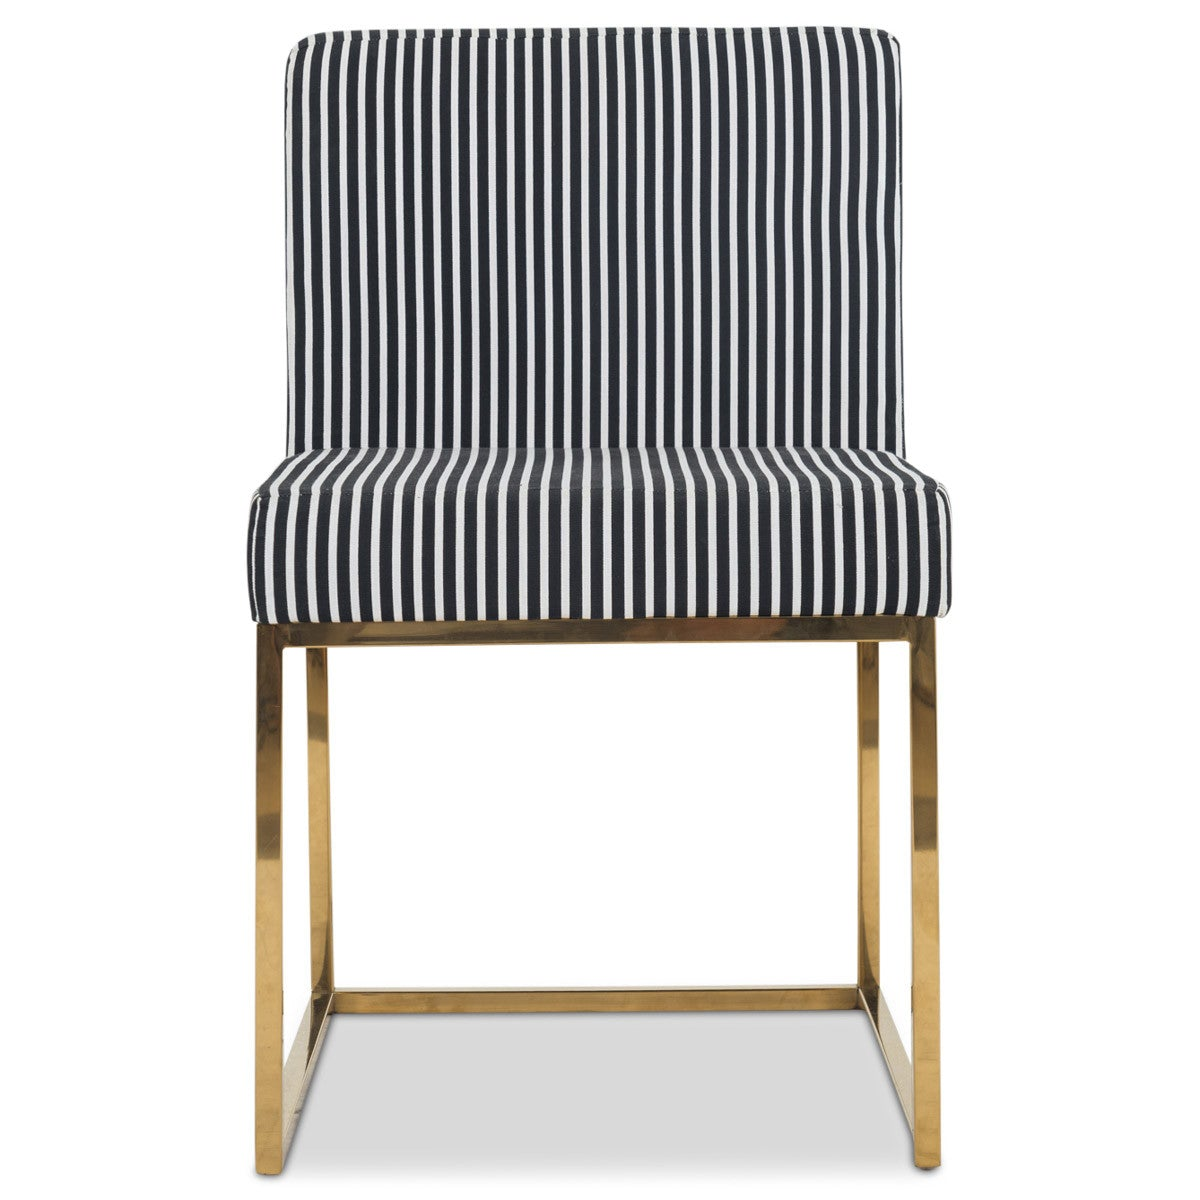 Beau 007 Dining Chair In Black And White Stripes